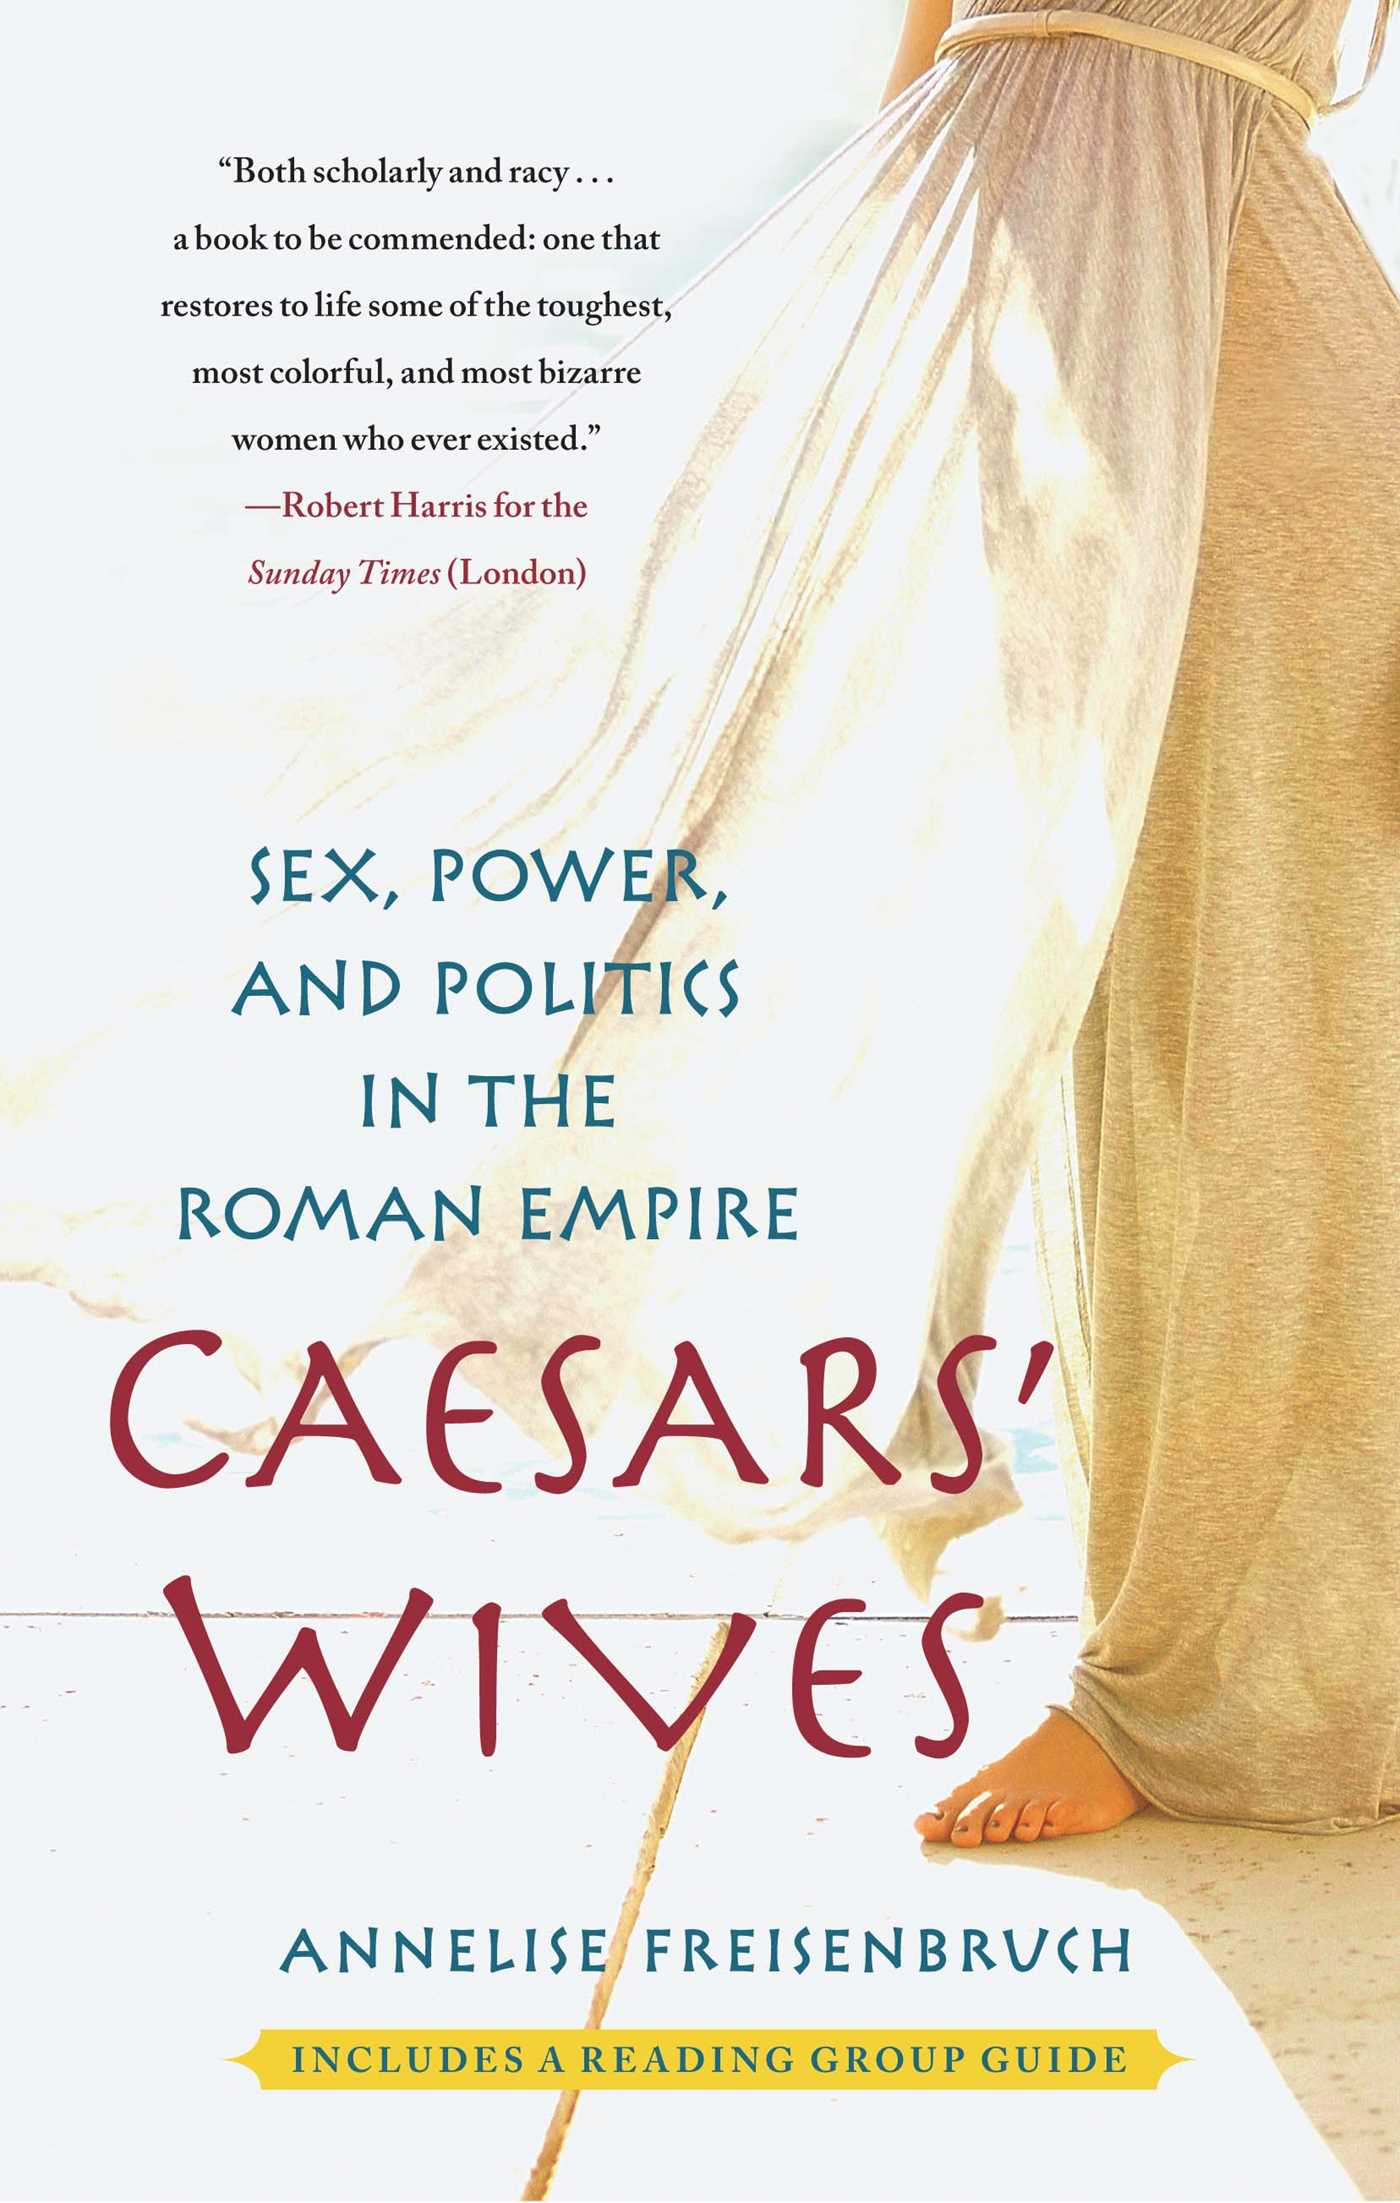 Caesars wives 9781416583578 hr